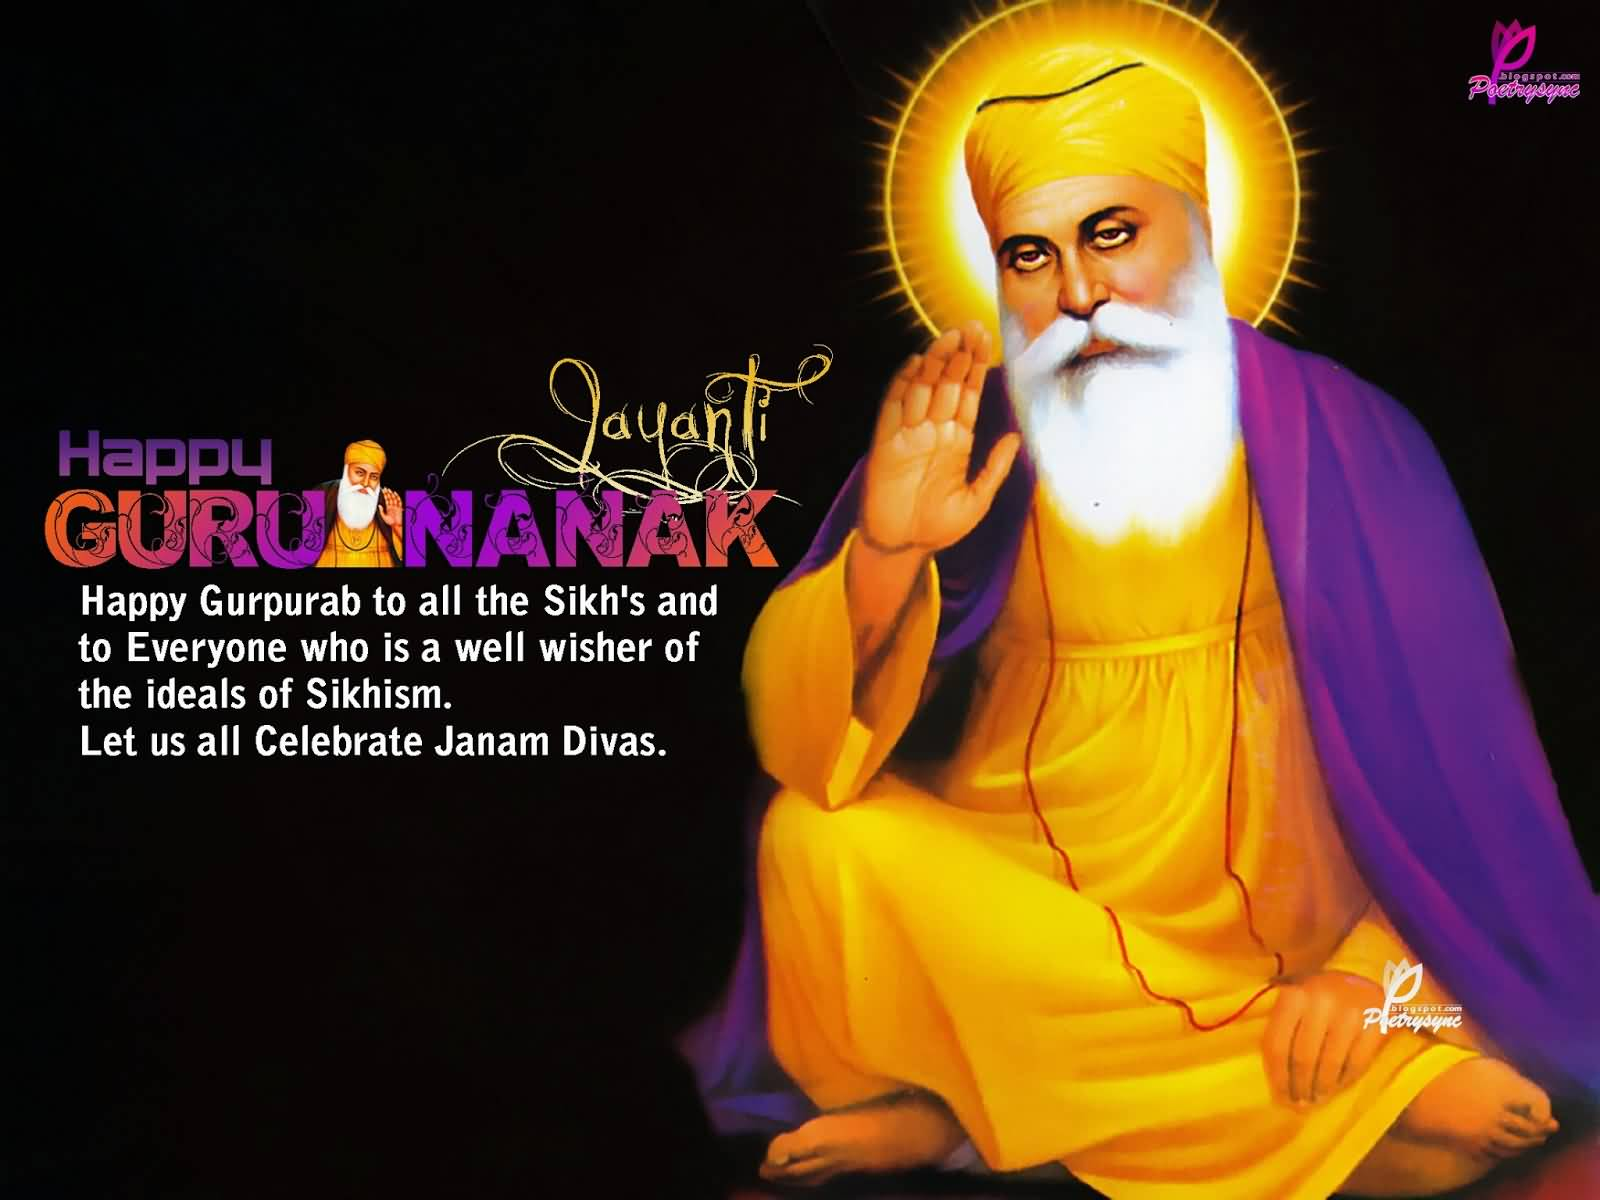 40+ Best Pictures And Photos Of Guru Nanak Jayanti Wishes